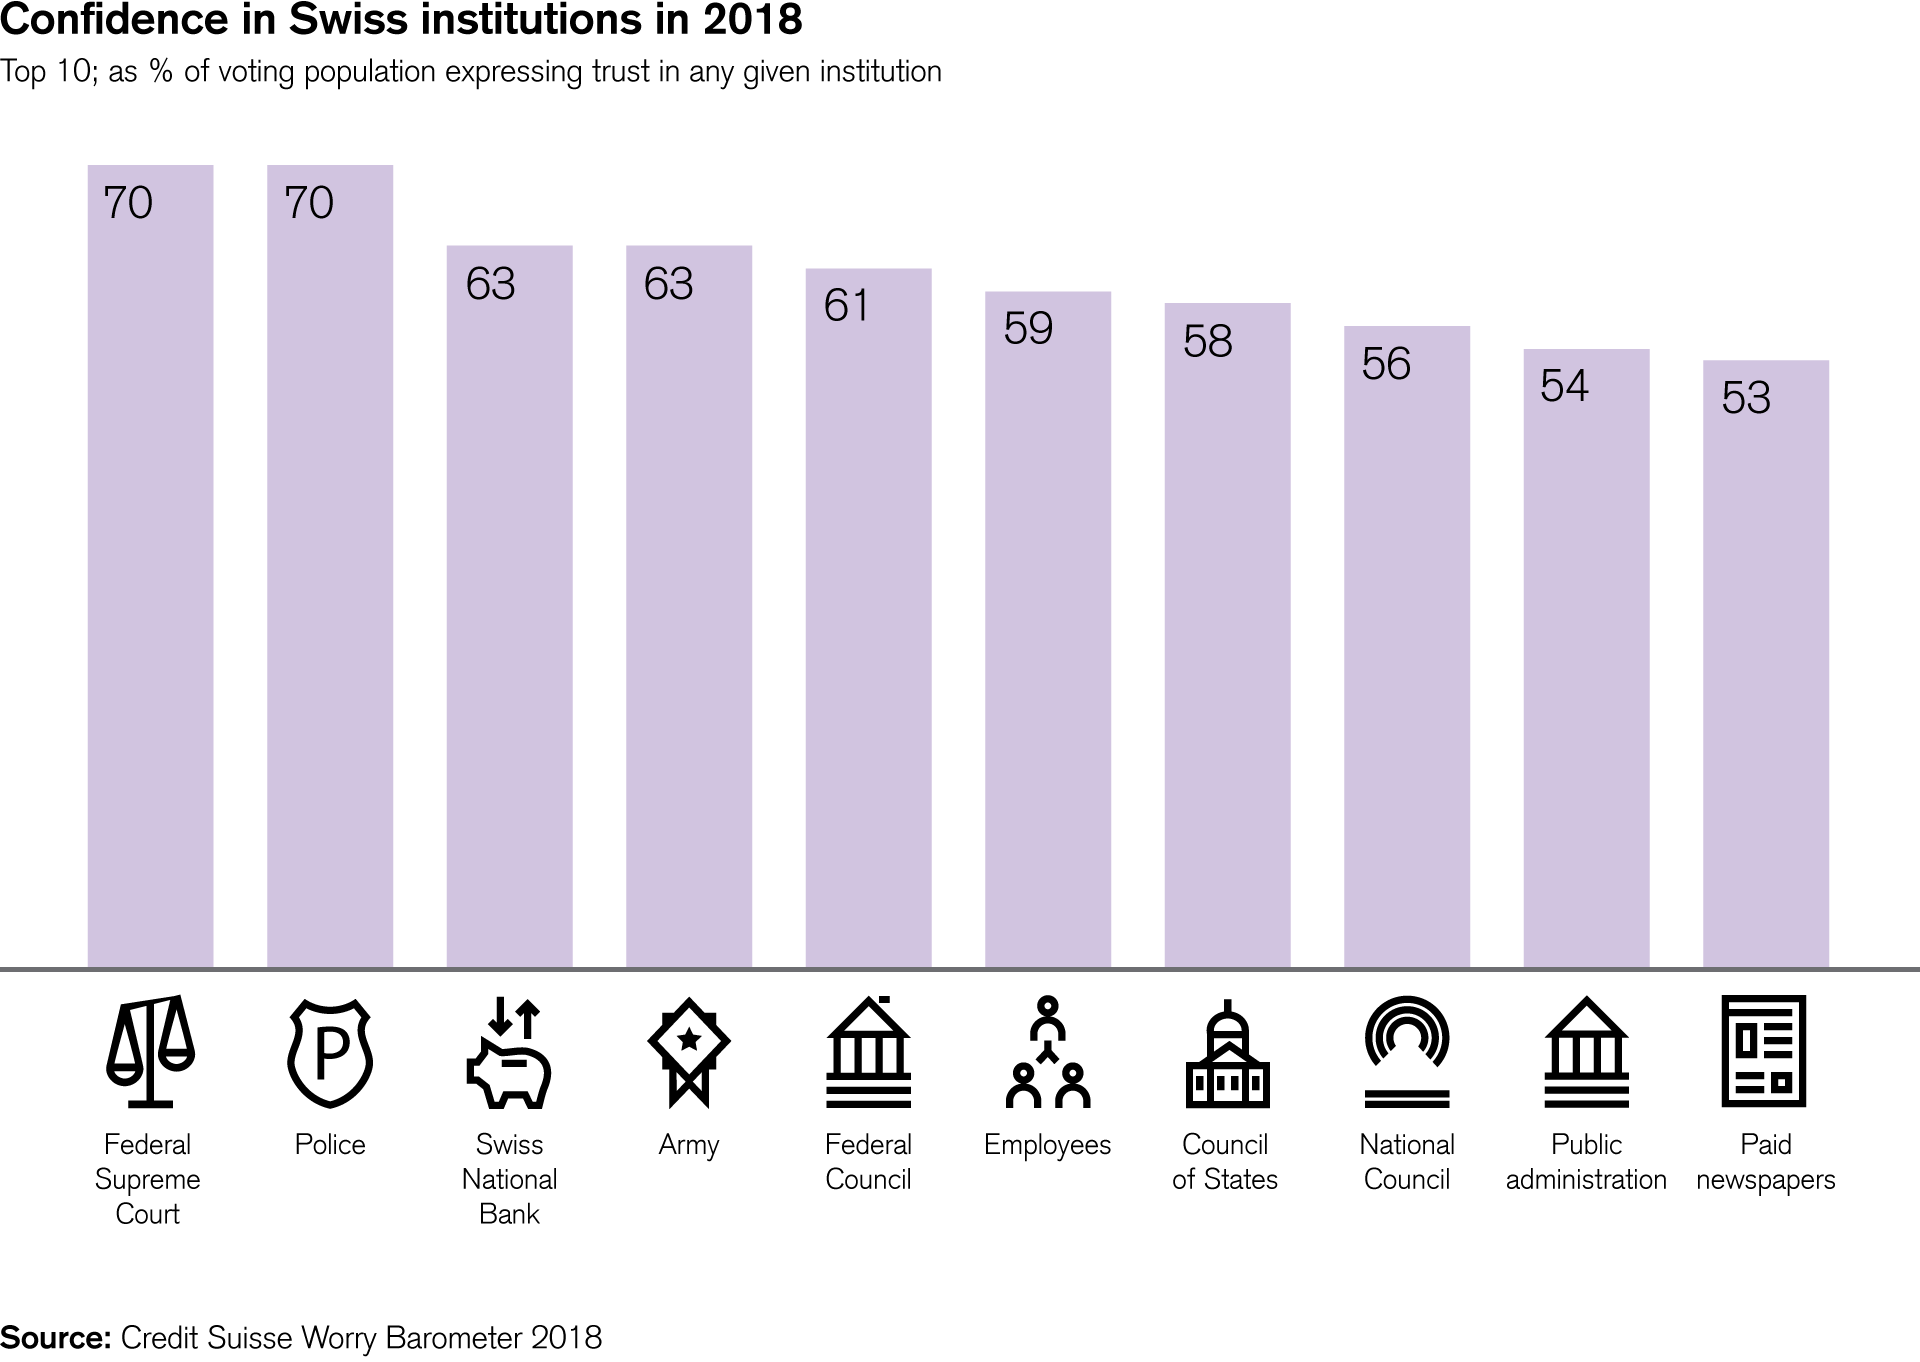 Confidence in Swiss institutions in 2018